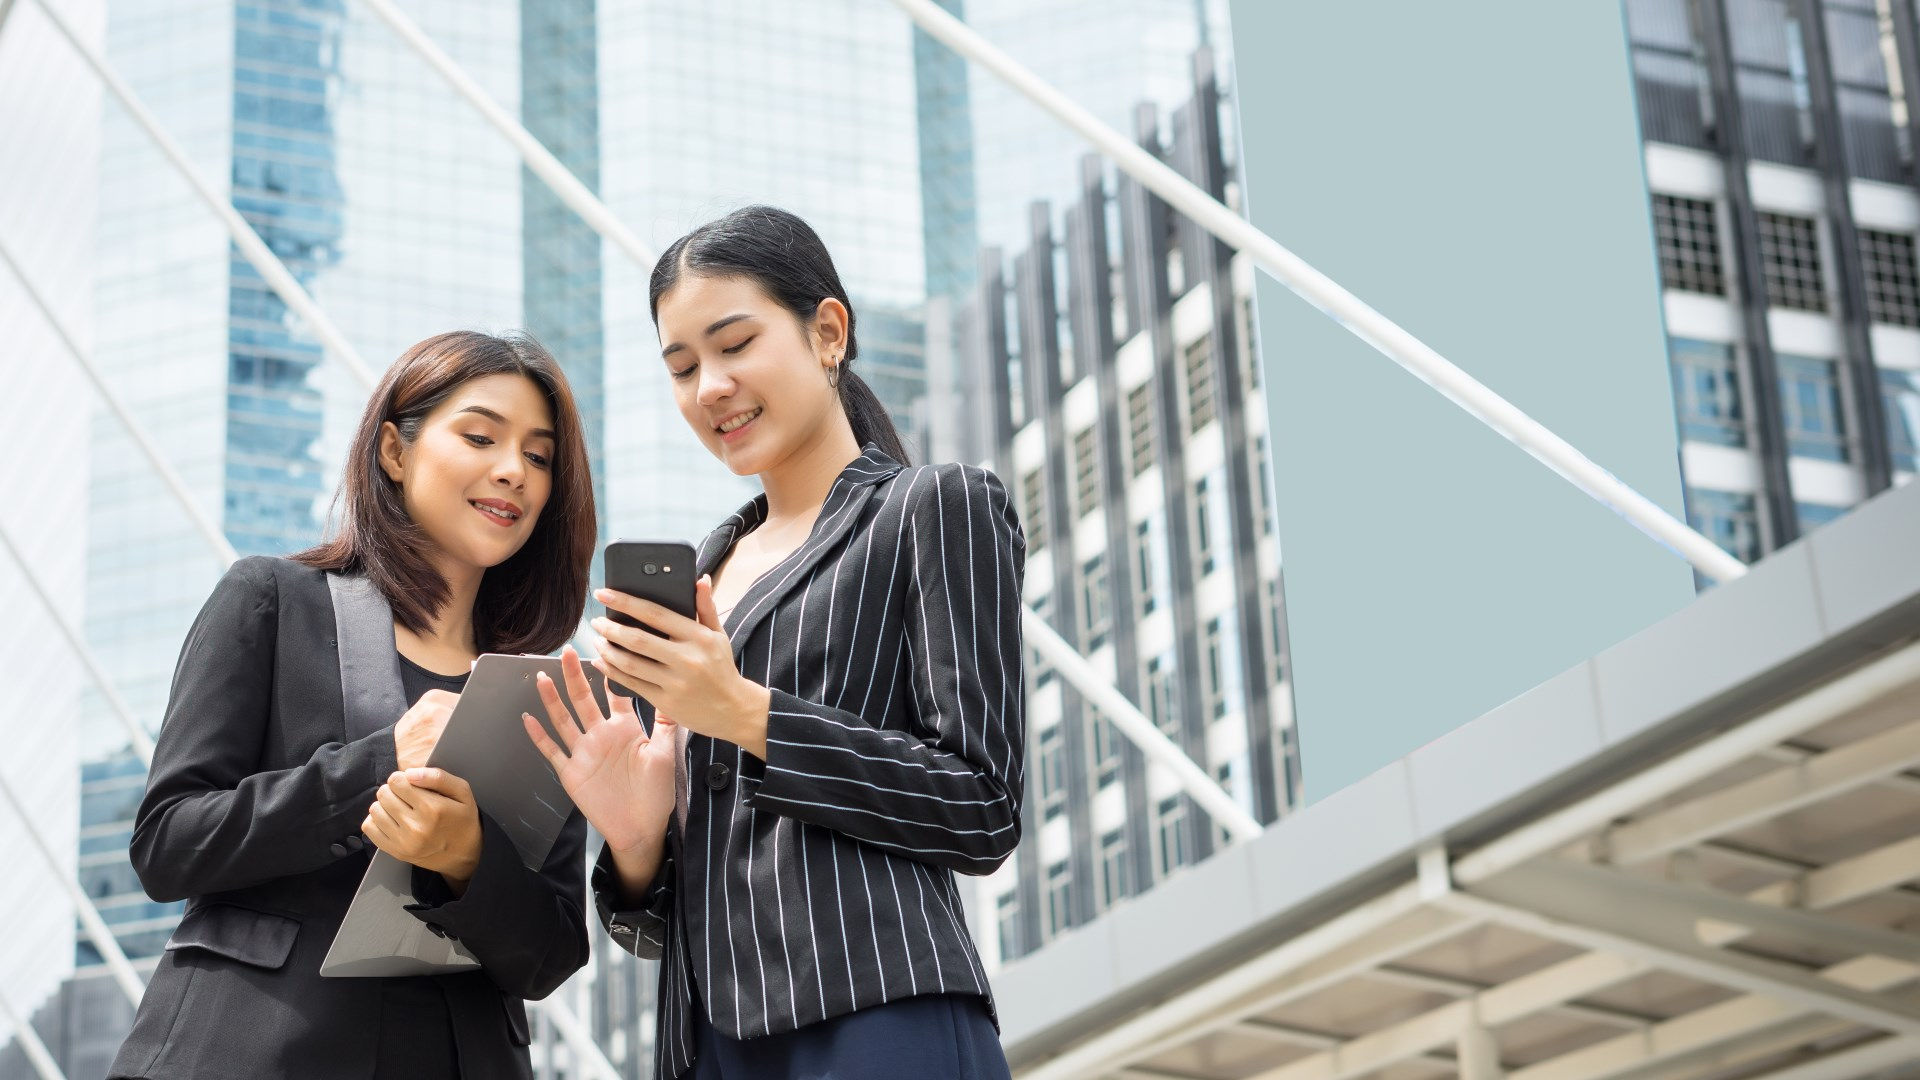 Two business woman standing using smartphone and discussing in front of the office. Business working concept.